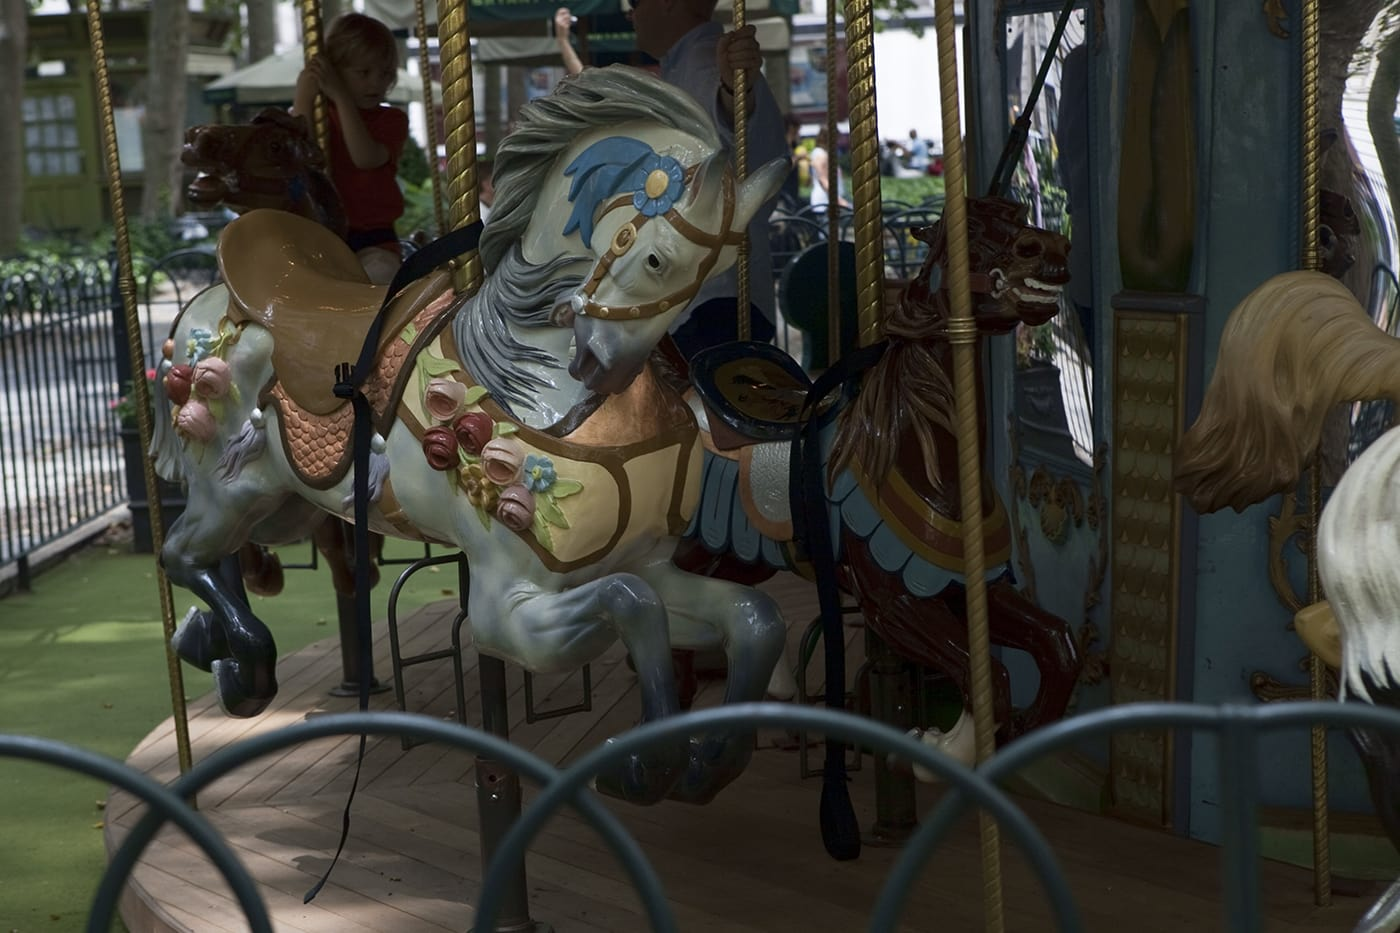 Carousel at Bryant Park in New York City.